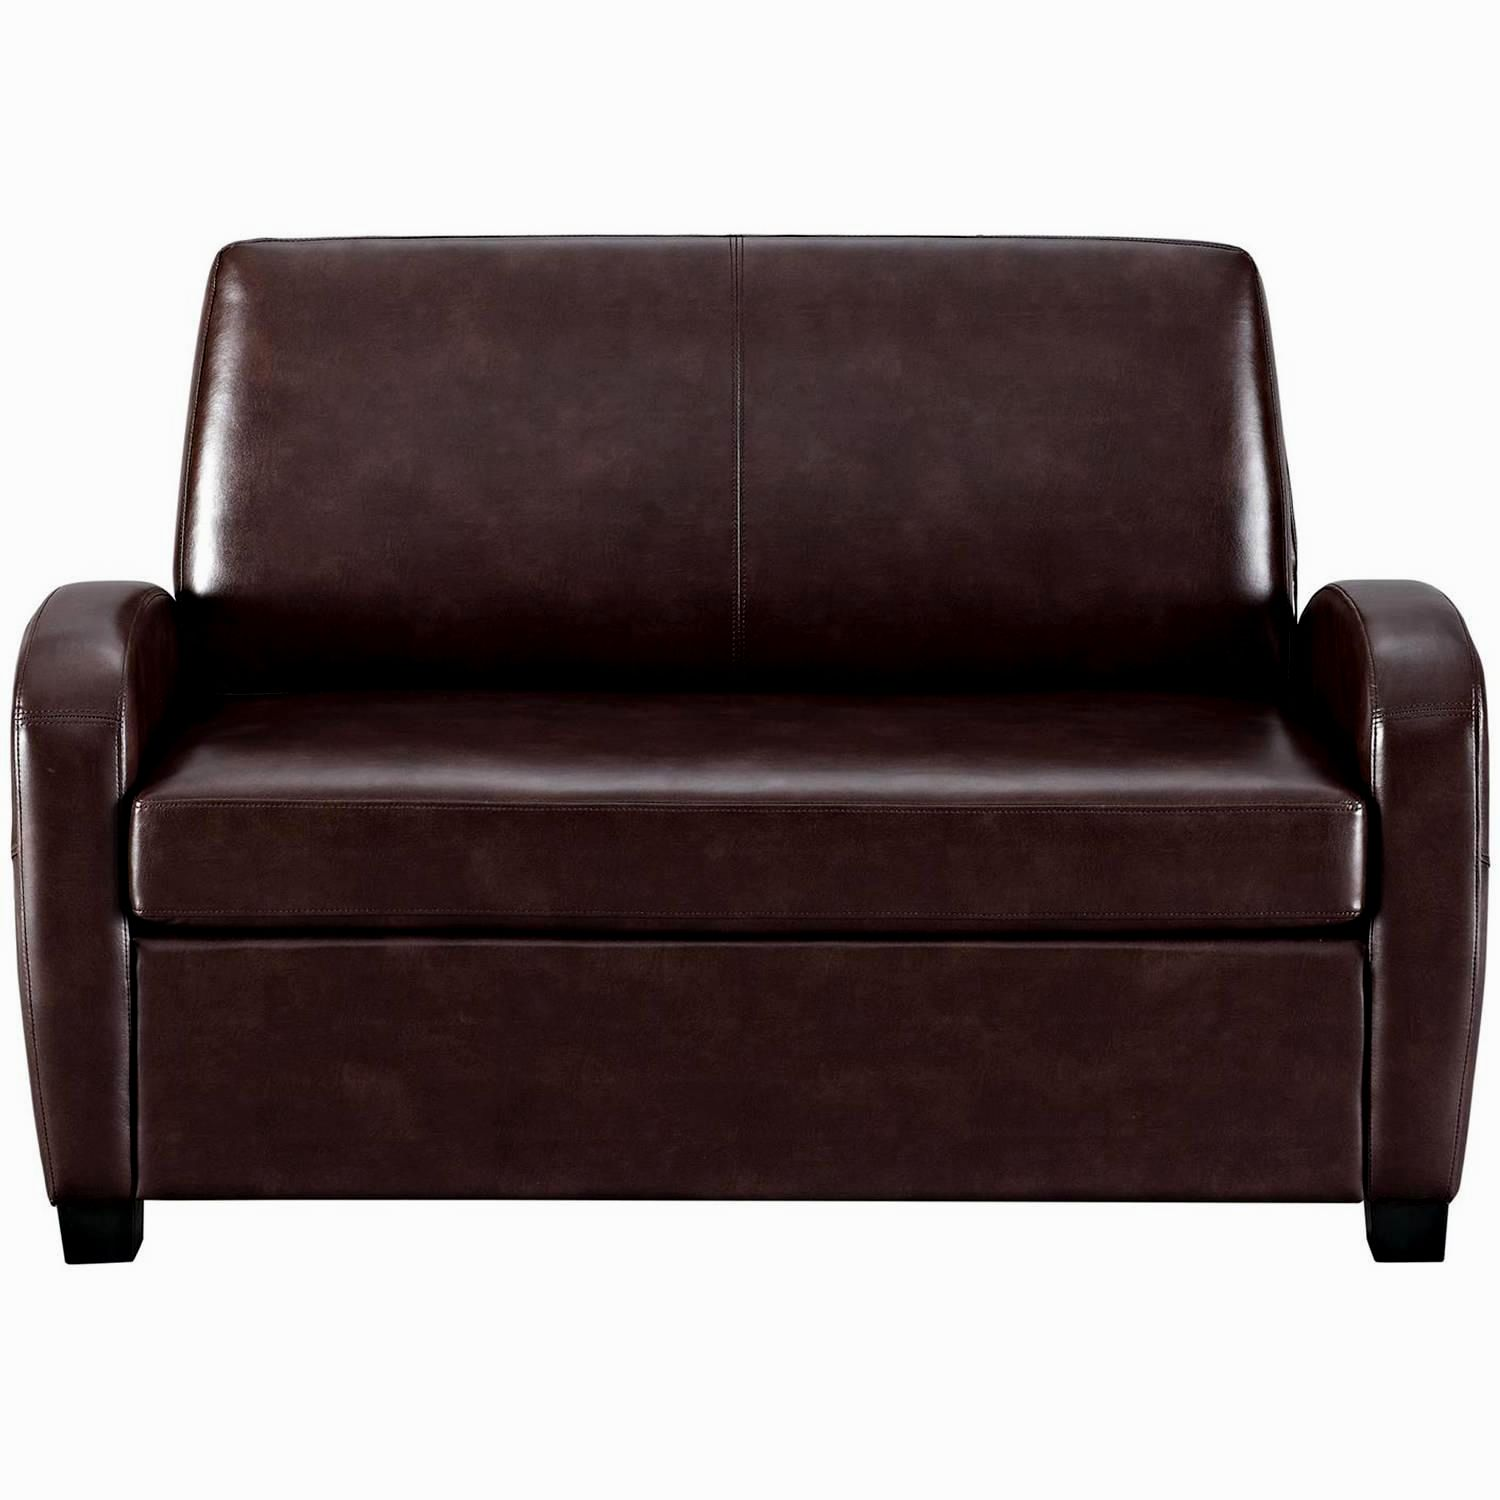 beautiful west elm leather sofa pattern-Cute West Elm Leather sofa Design